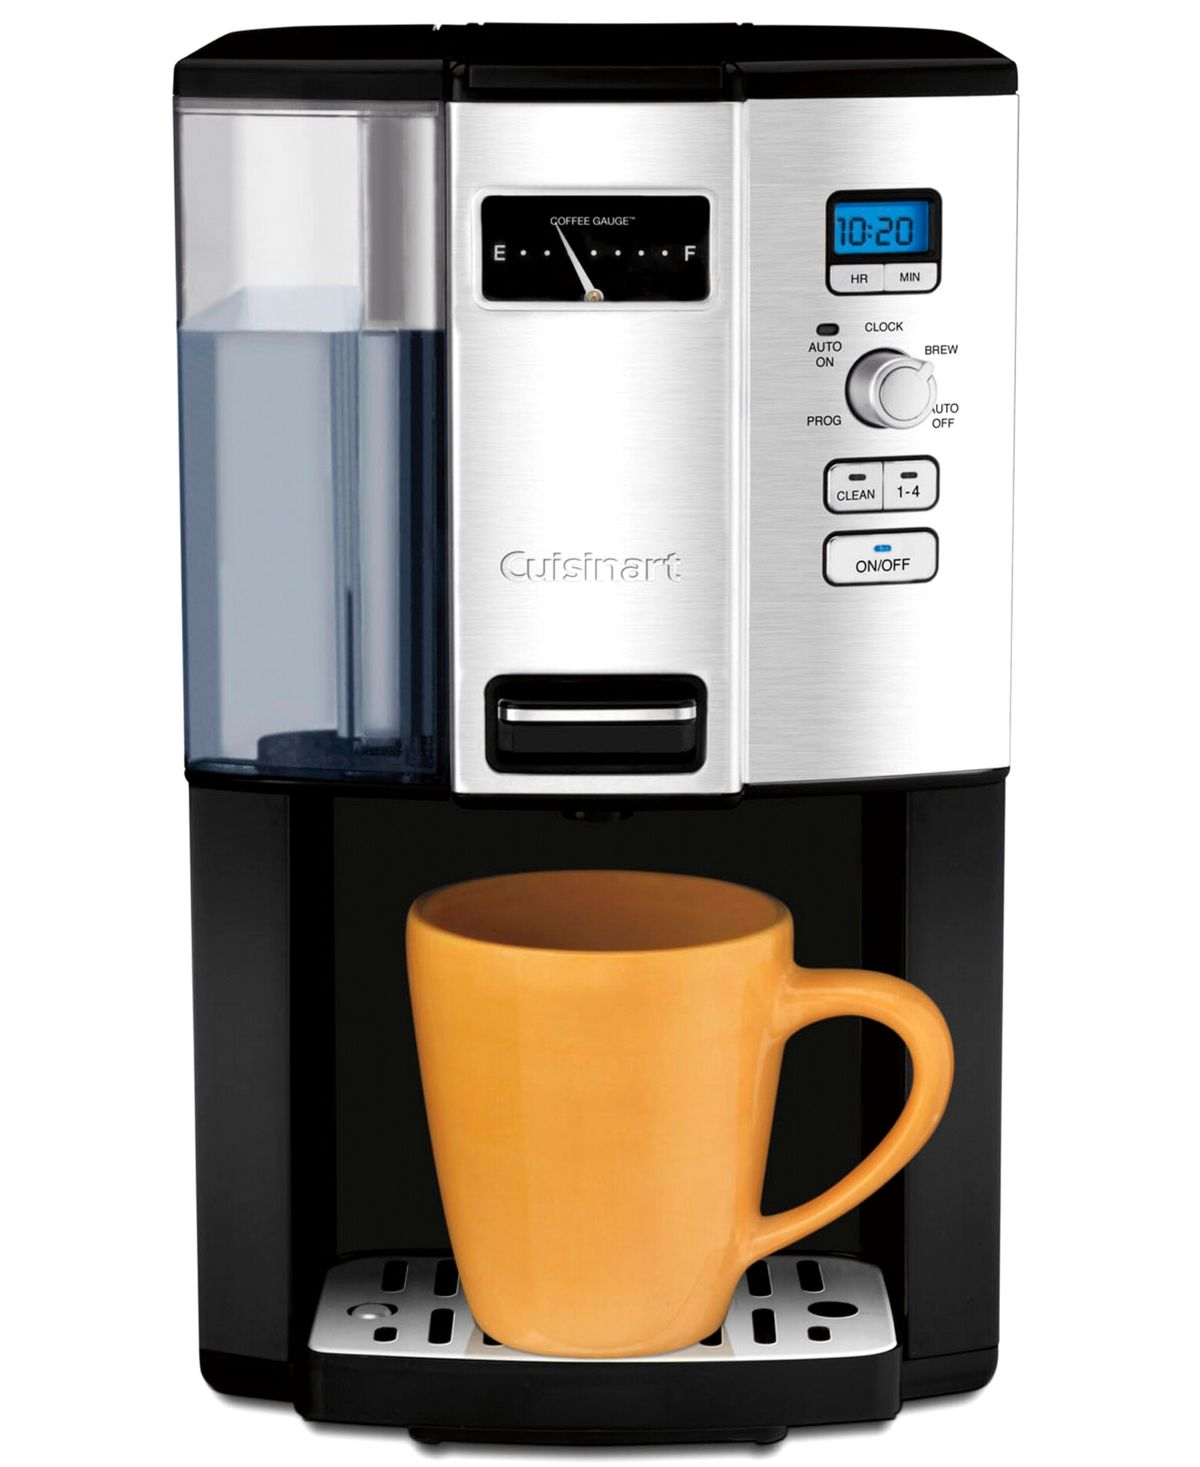 Cuisinart Dcc 3000 Coffee On Demand Coffee Maker Reviews Coffee Makers Kitchen Macy S In 2020 Cuisinart Coffee Maker Single Serve Coffee Makers Best Coffee Maker